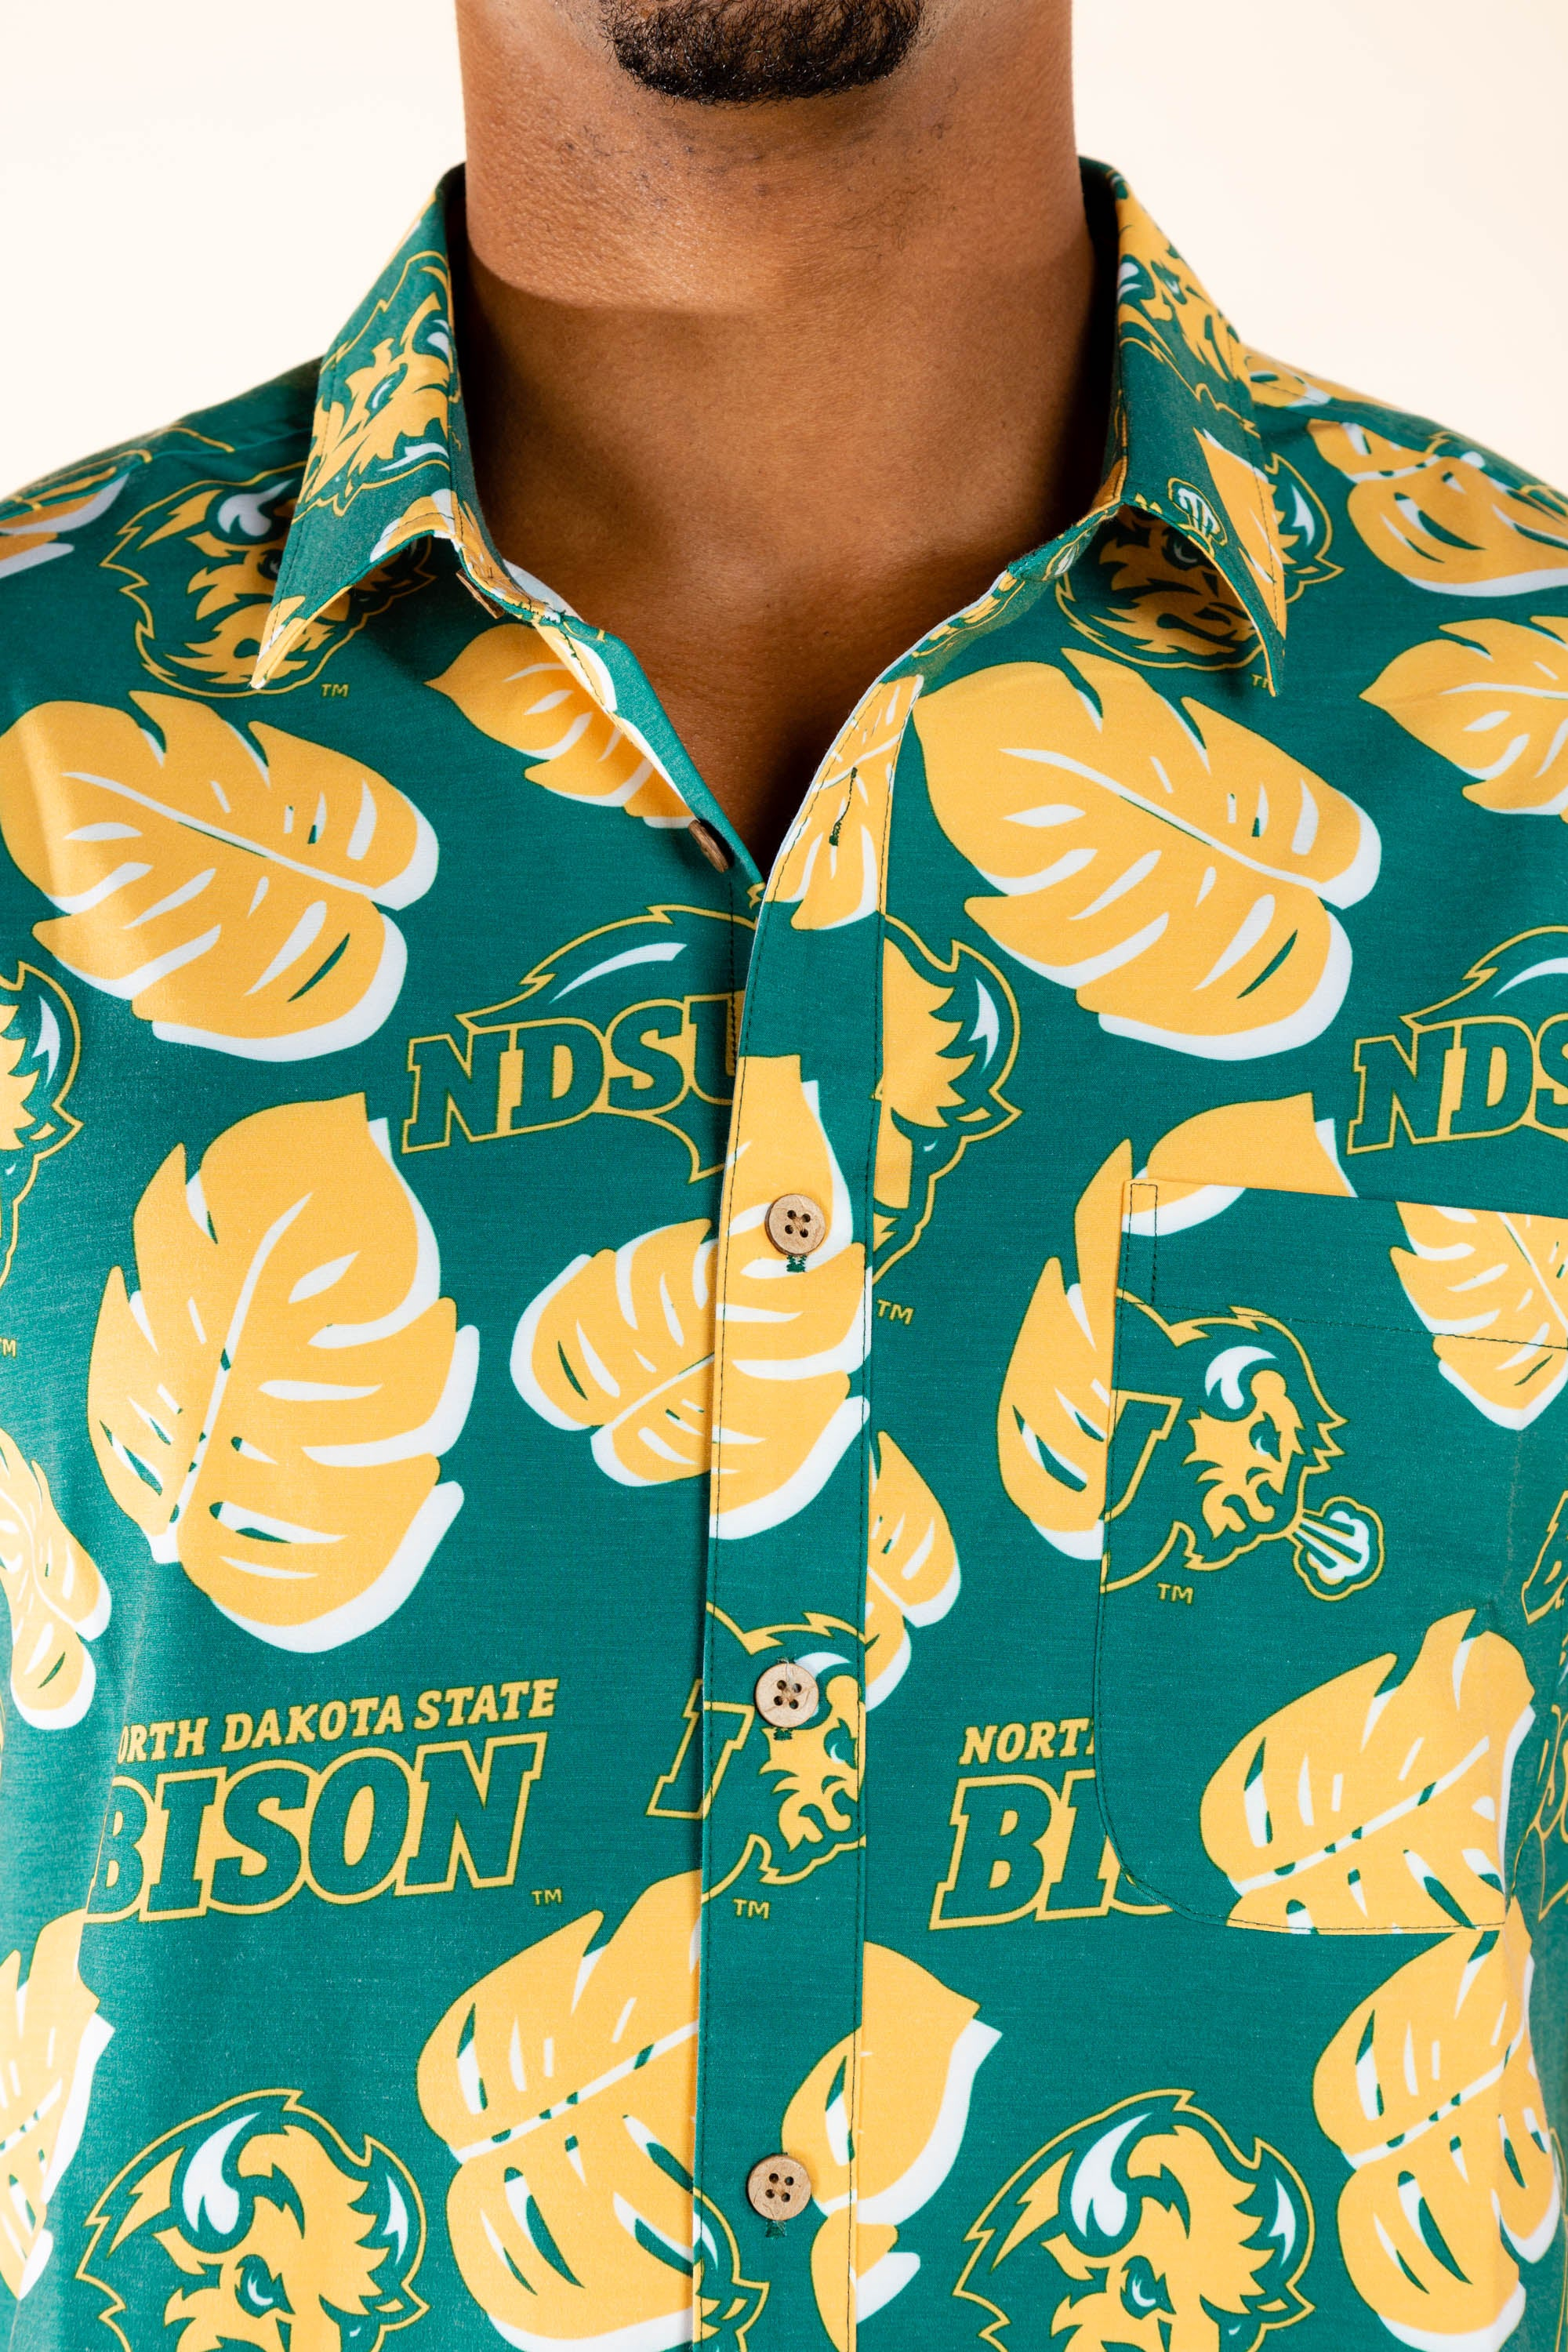 NDSU Bisons Button Up Tailgating Shirt